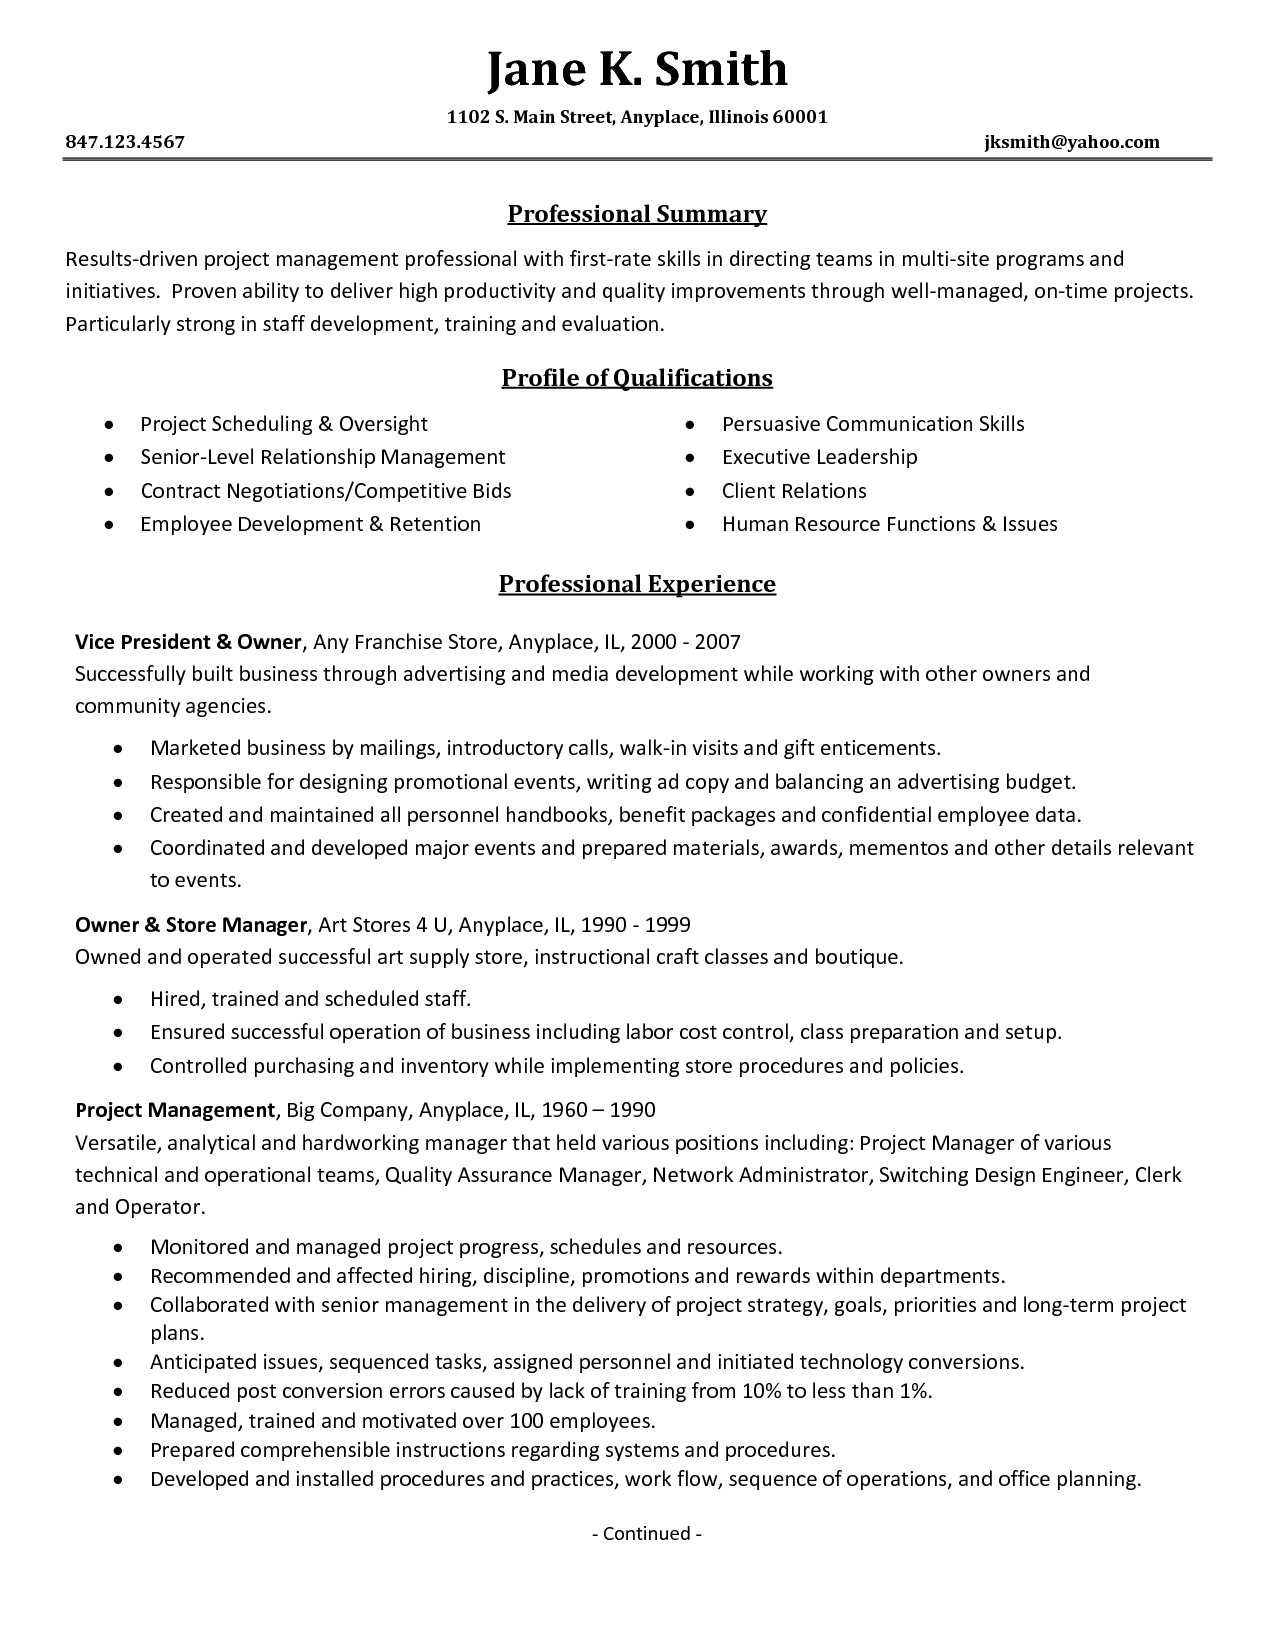 Resume Strengths Leadership Skills Resume Leadership Skills Resume Template